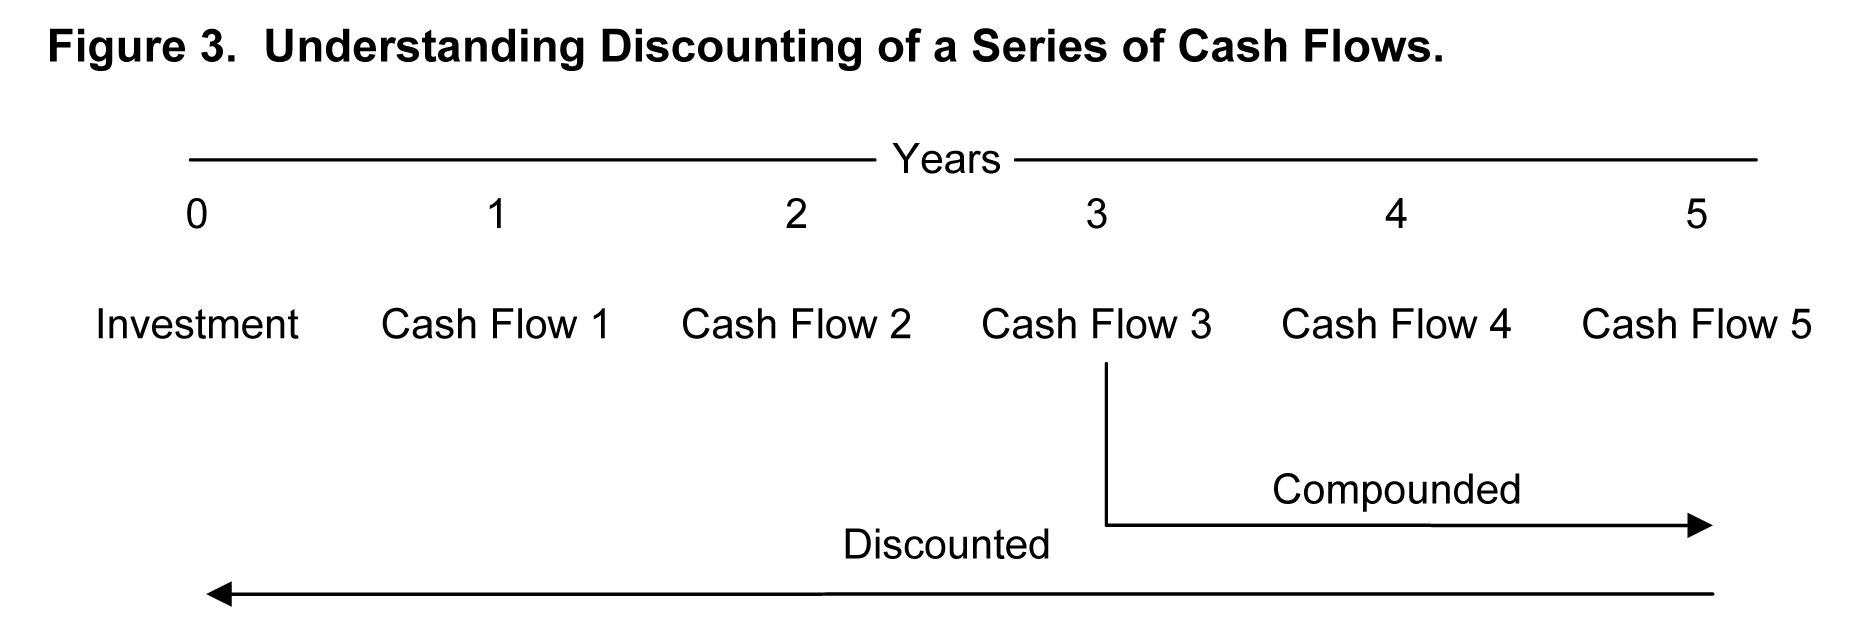 understanding discounting of a series of cash flows